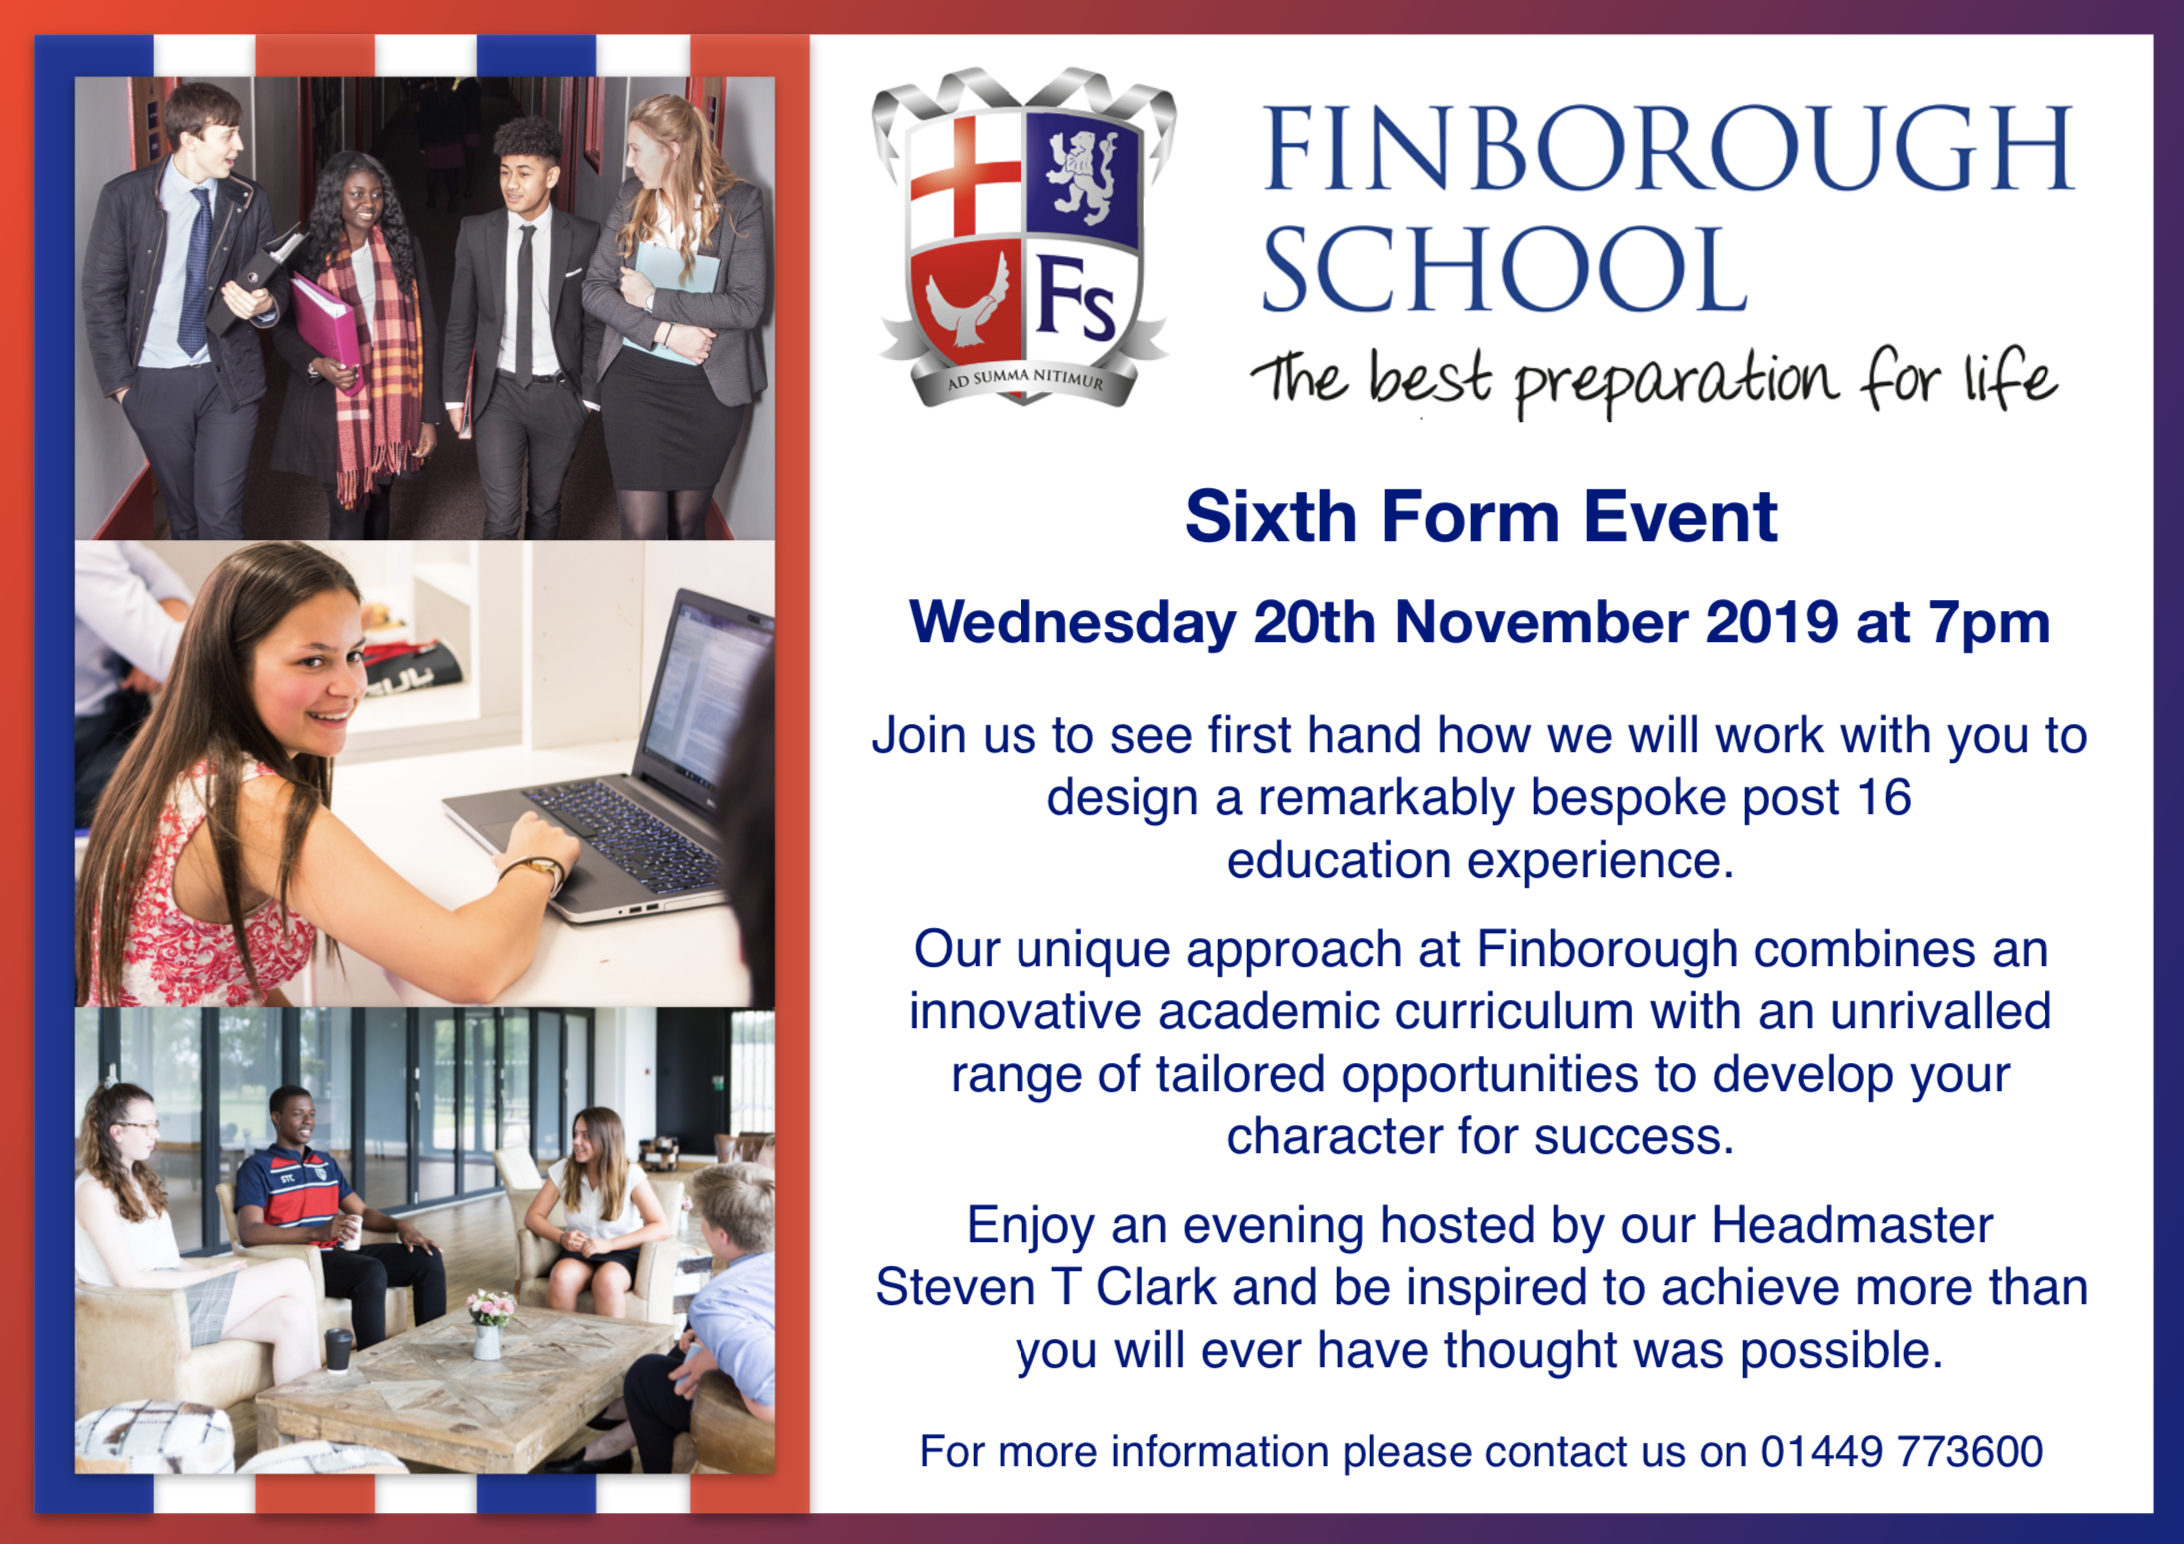 Finborough School Sixth Form Event